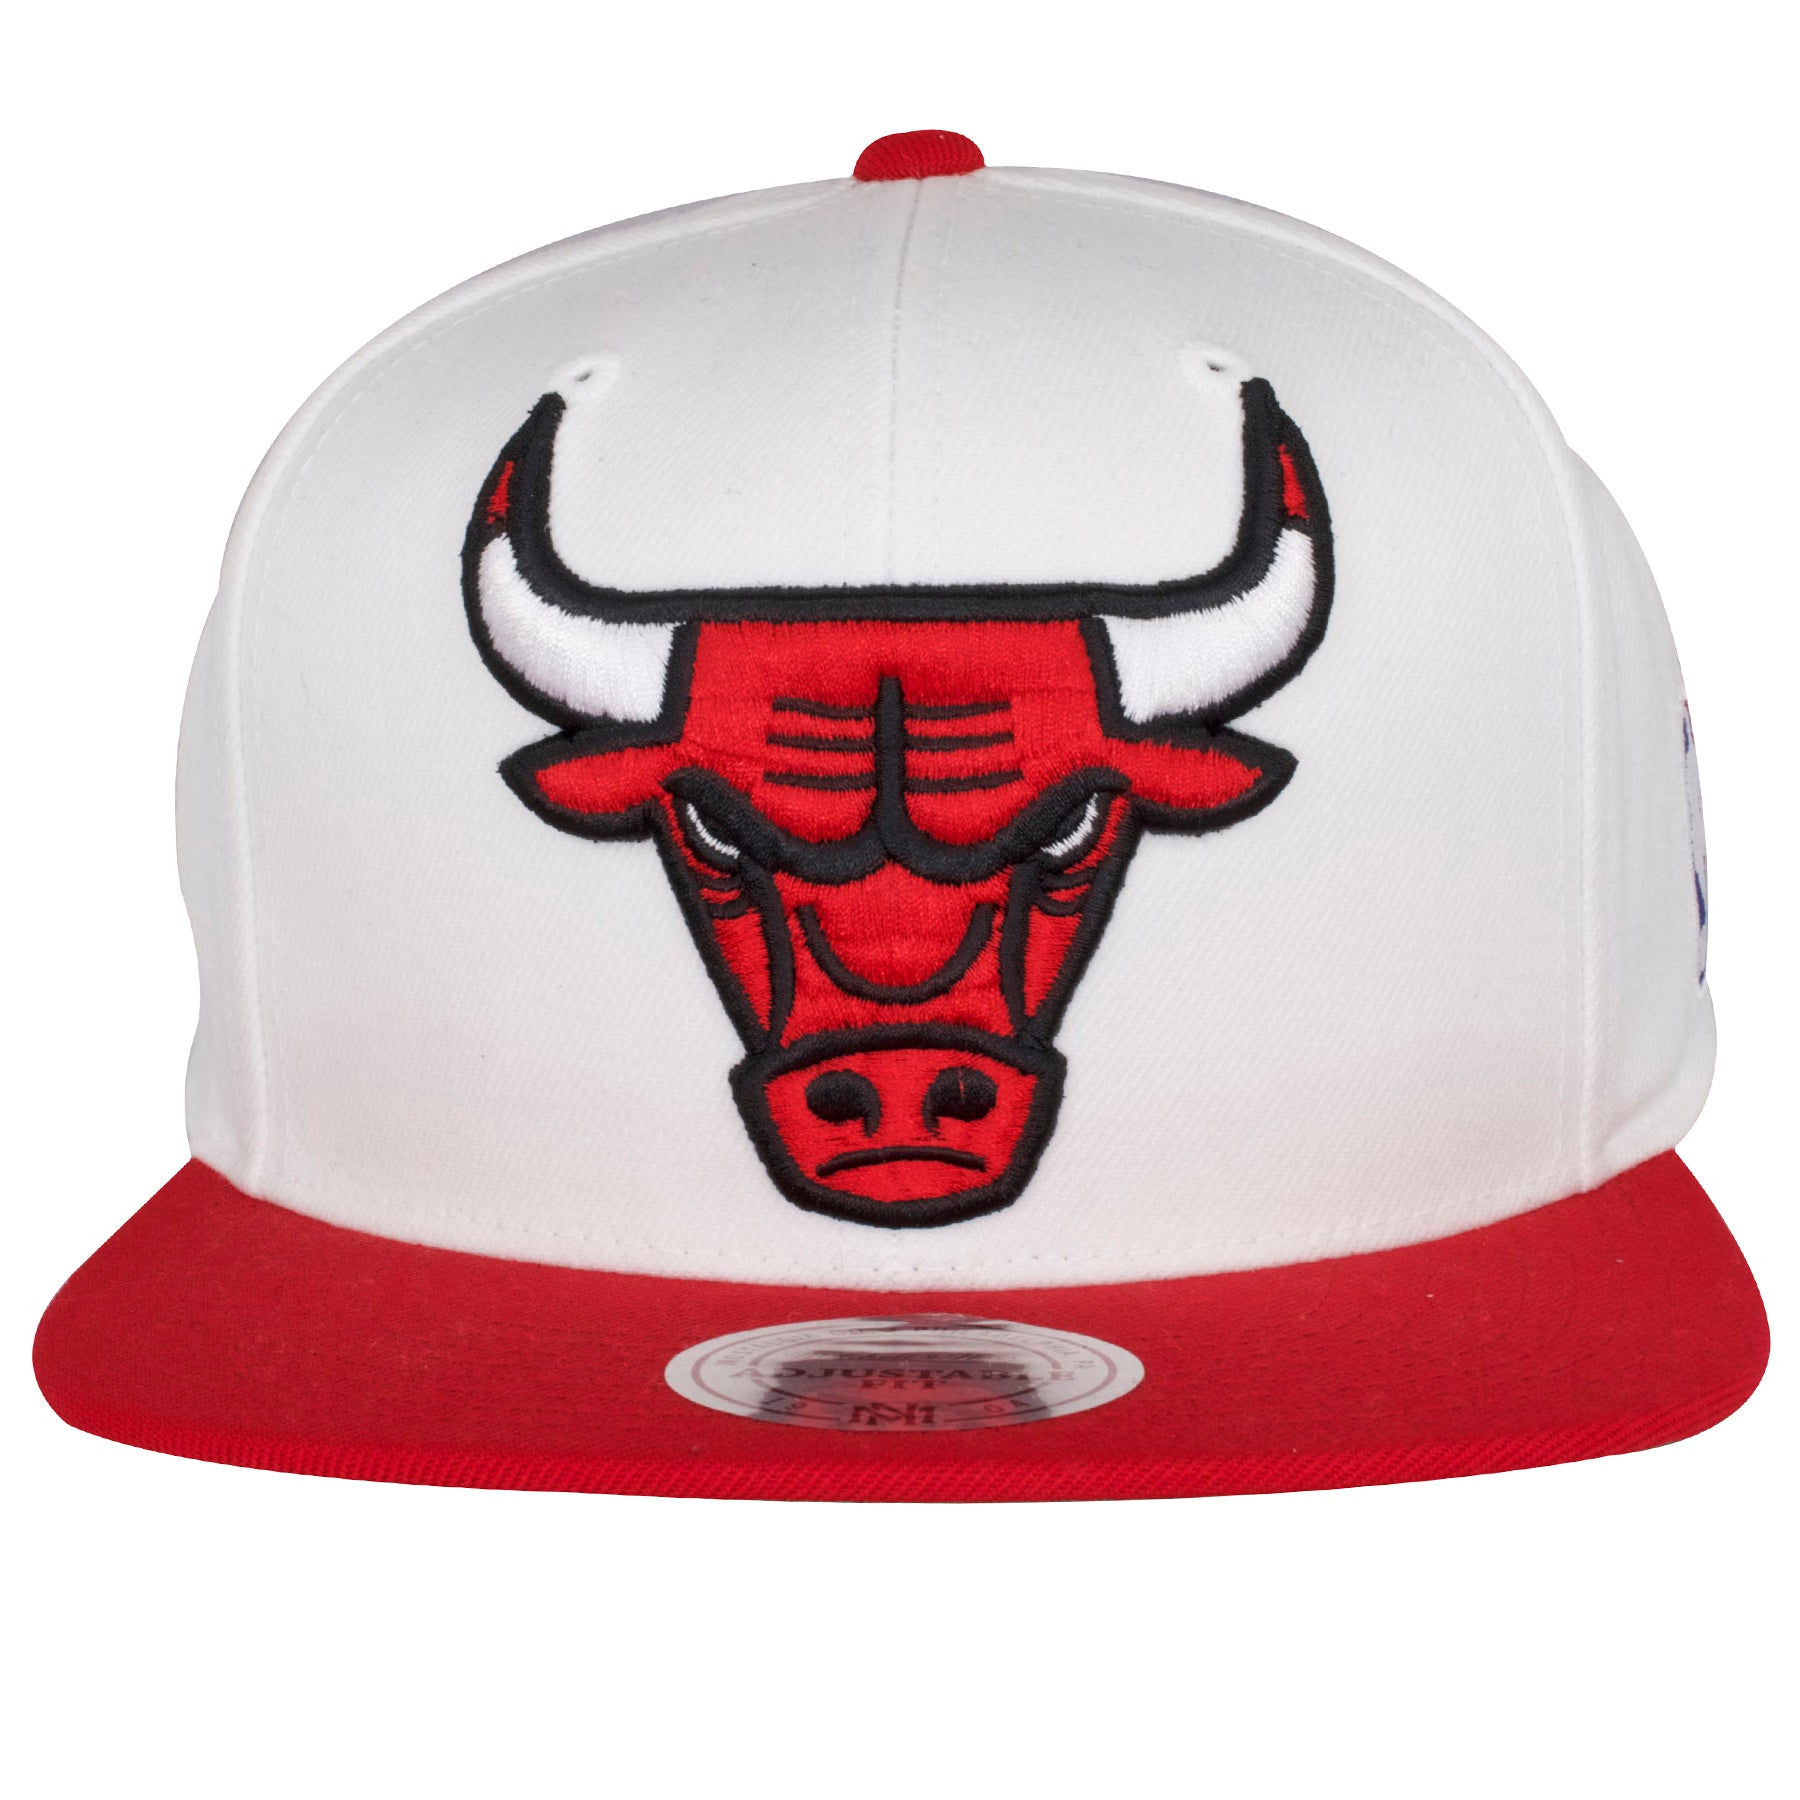 88e37ae66c1 on the front of the chicago bulls win like '96 11s sneaker matching  snapback hat